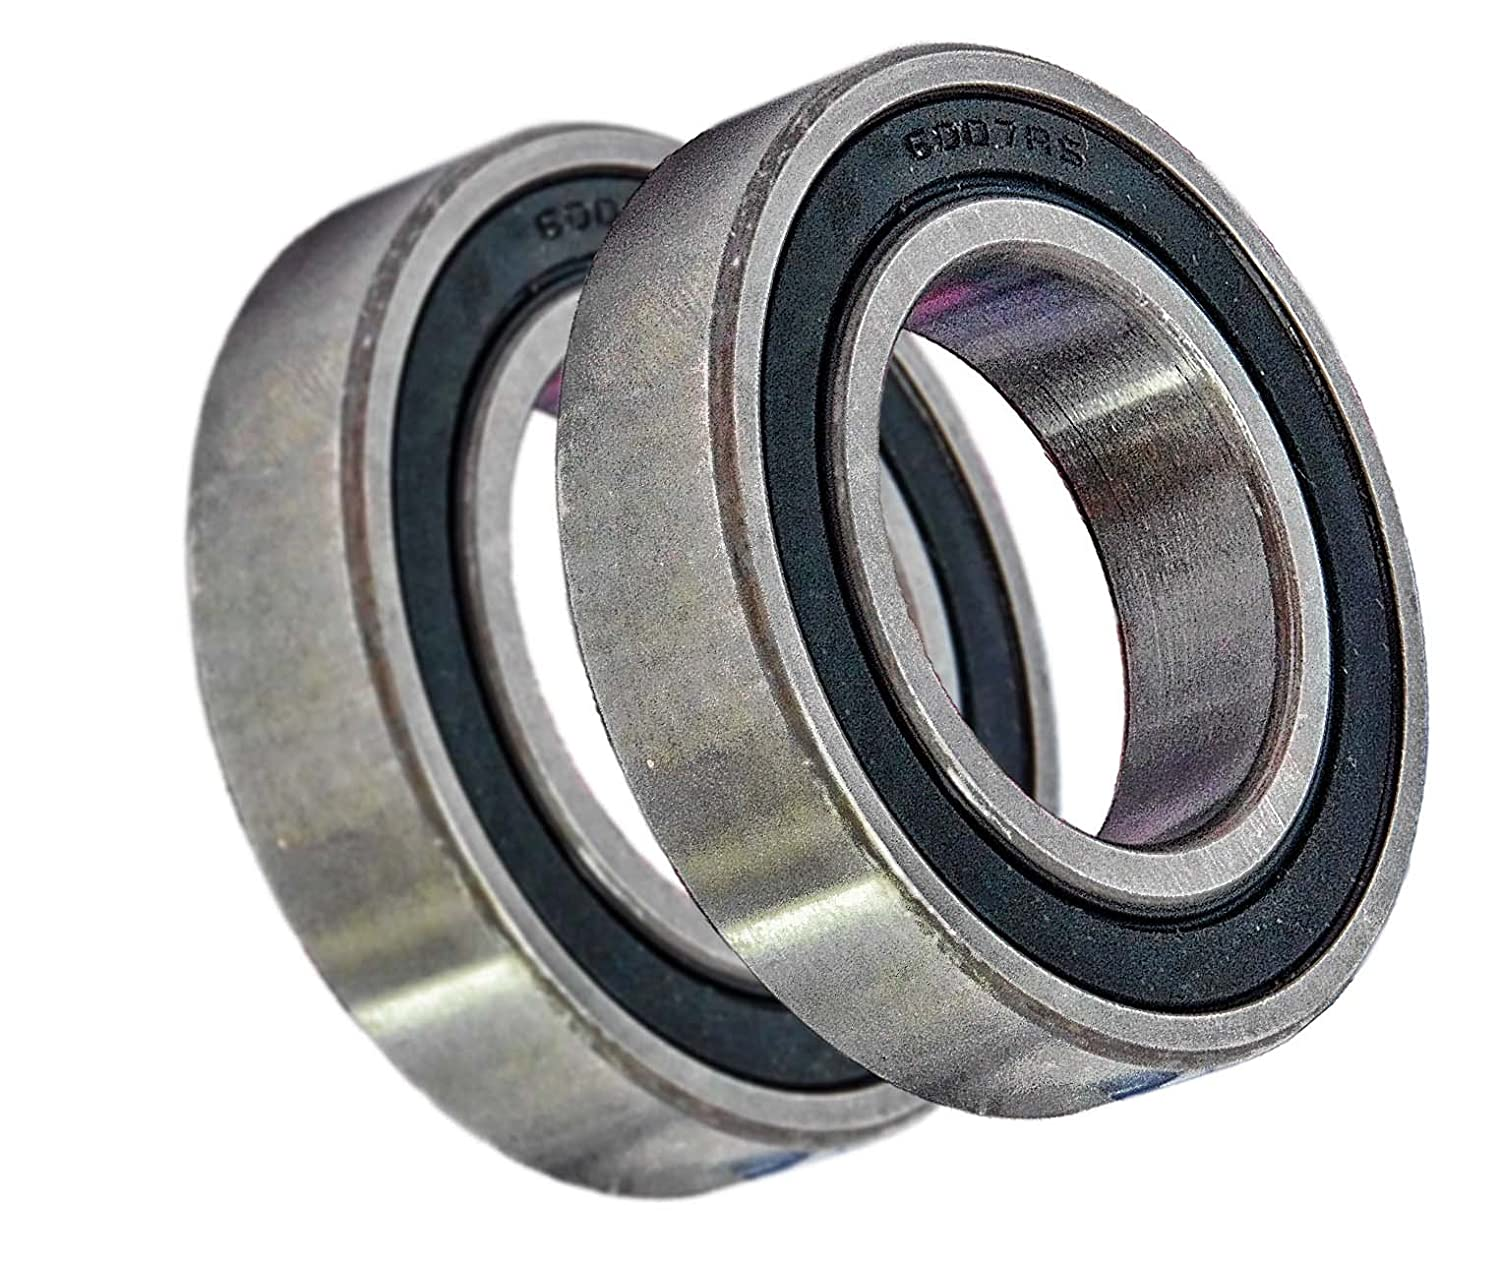 2 Bearing 6007-2RS 35x62x14 Sealed Ball Bearings